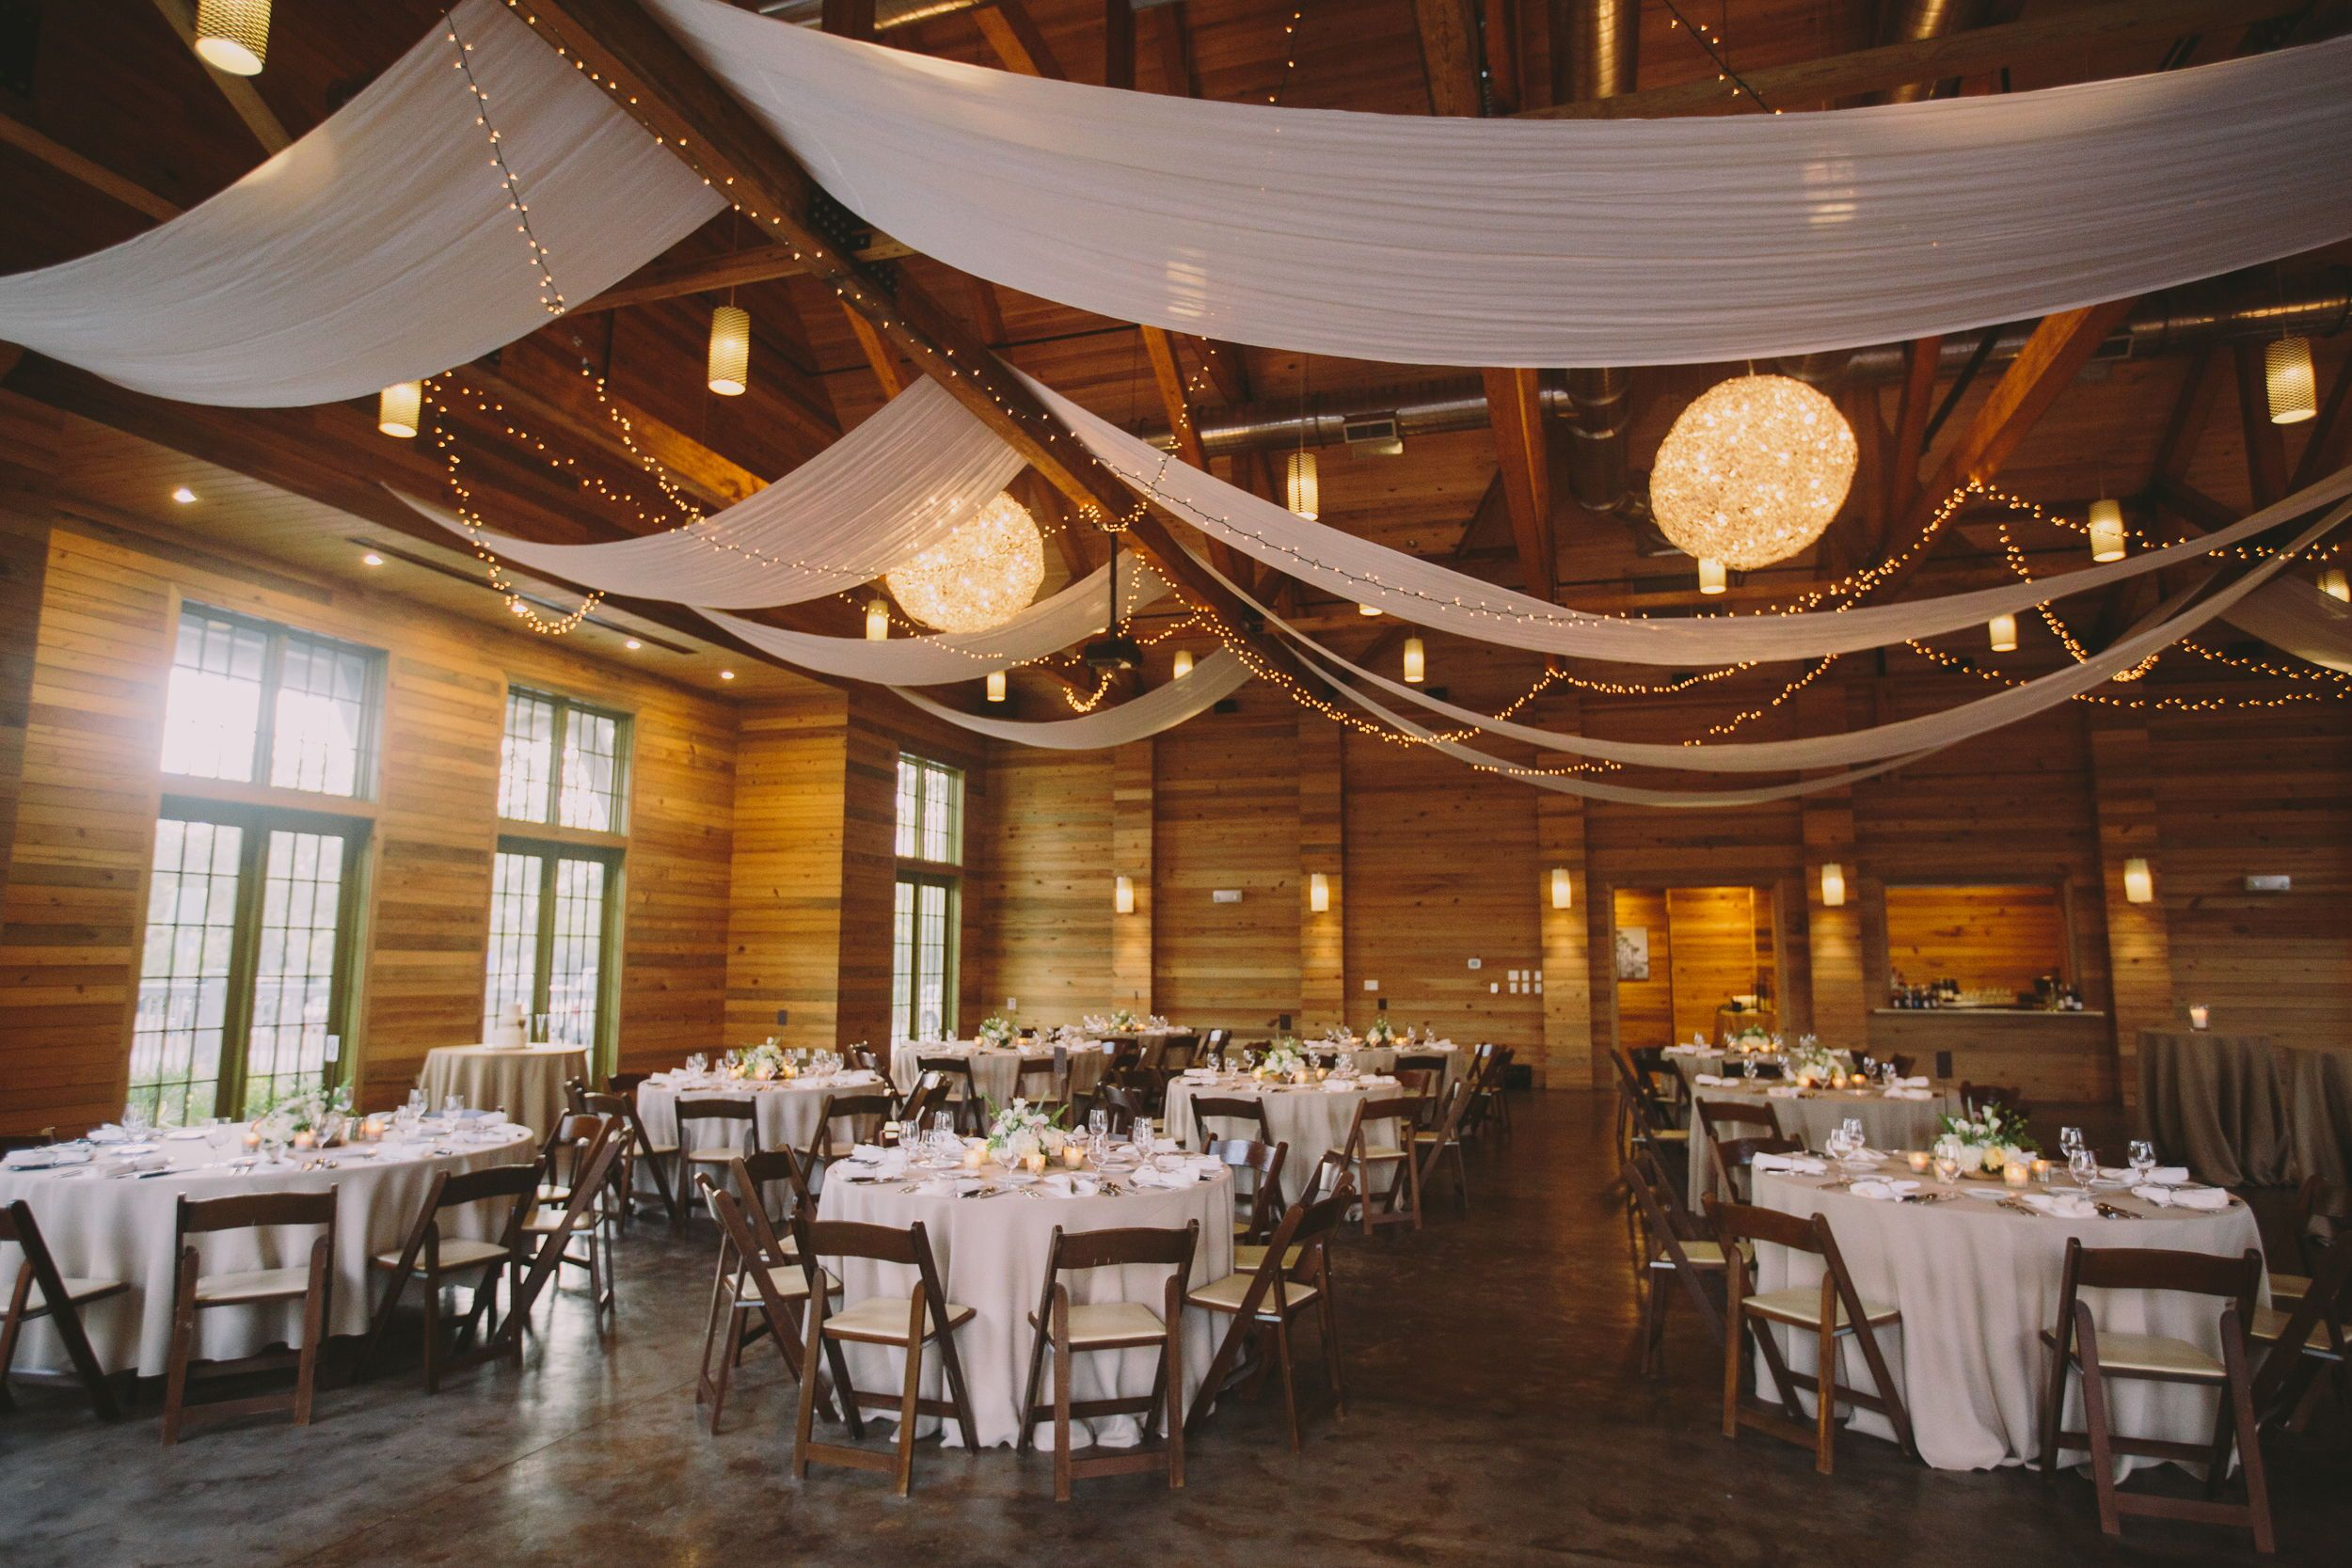 Indoor Wedding Reception Ceiling Decor Ideas Venue The Lakehouse At Watercolor Inn